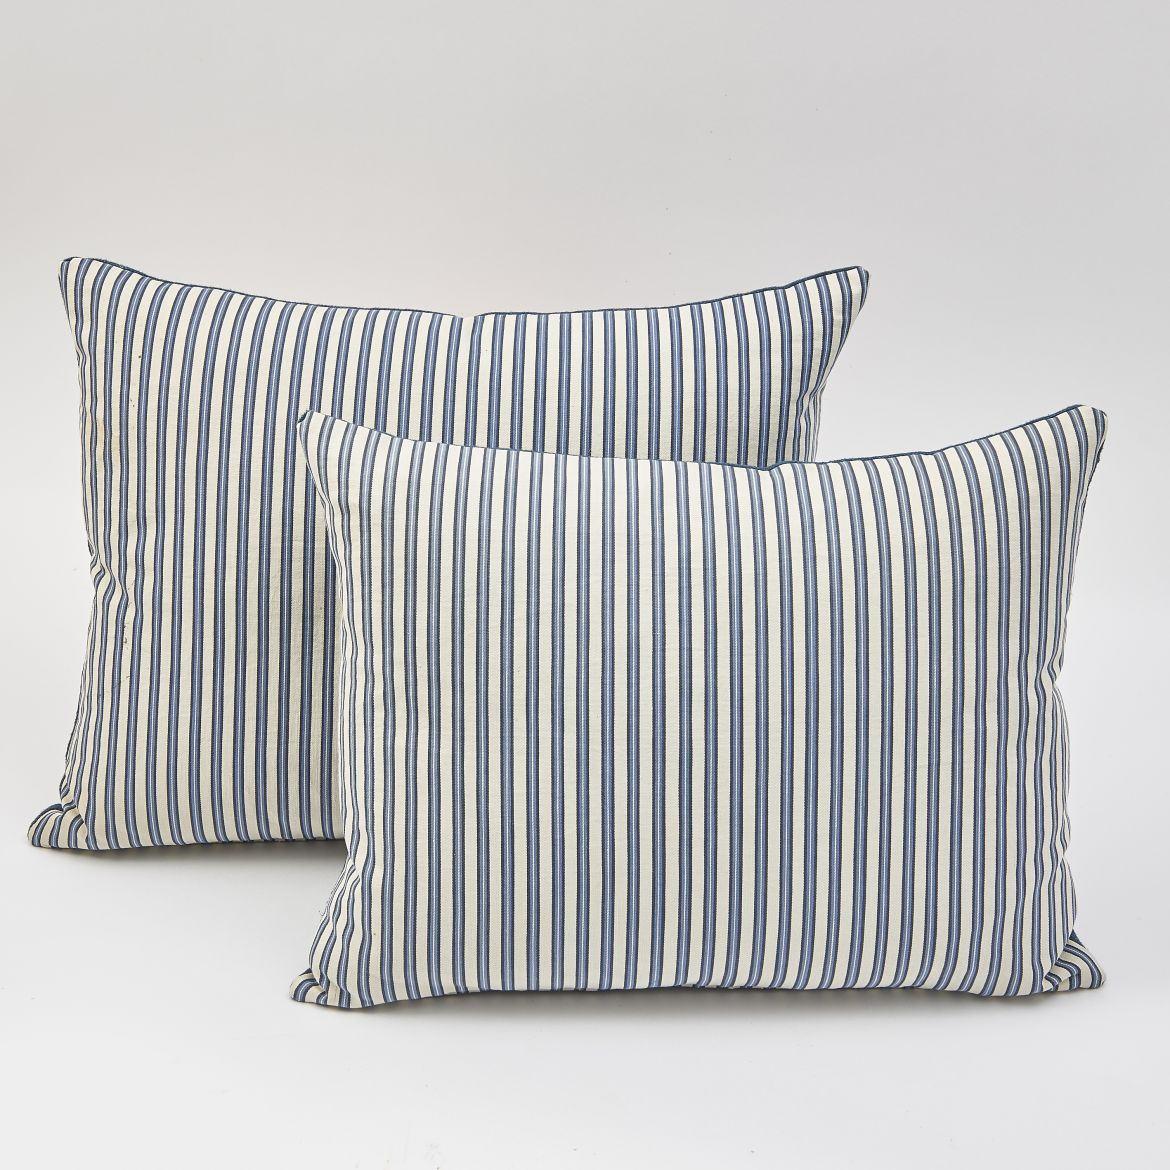 19th Century Ticking Cushions